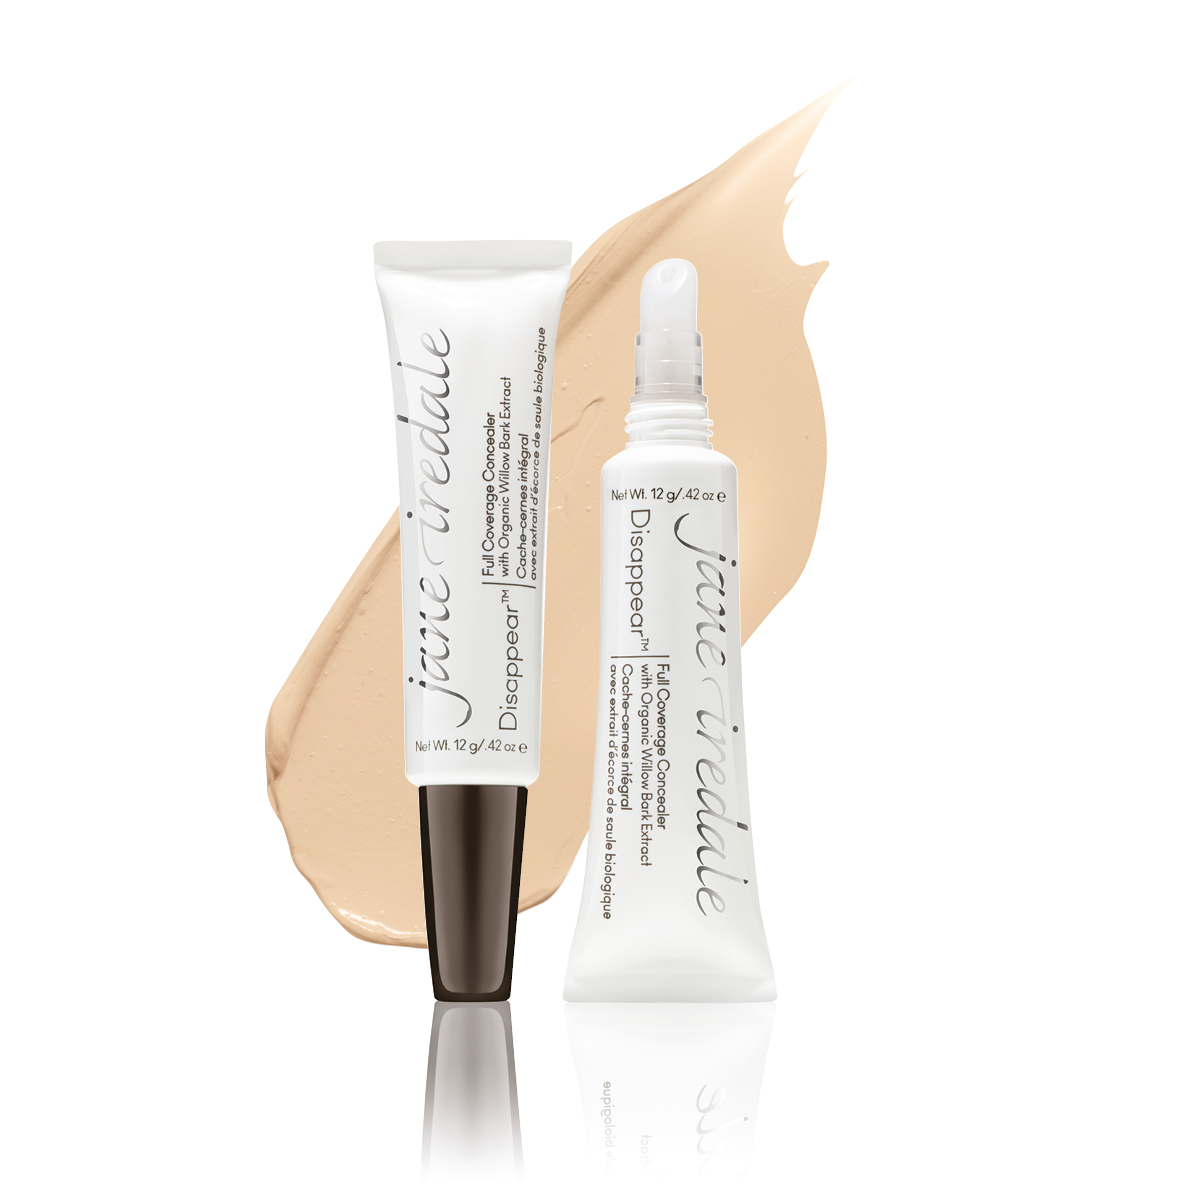 Jane Iredale Disappear Concealer, light